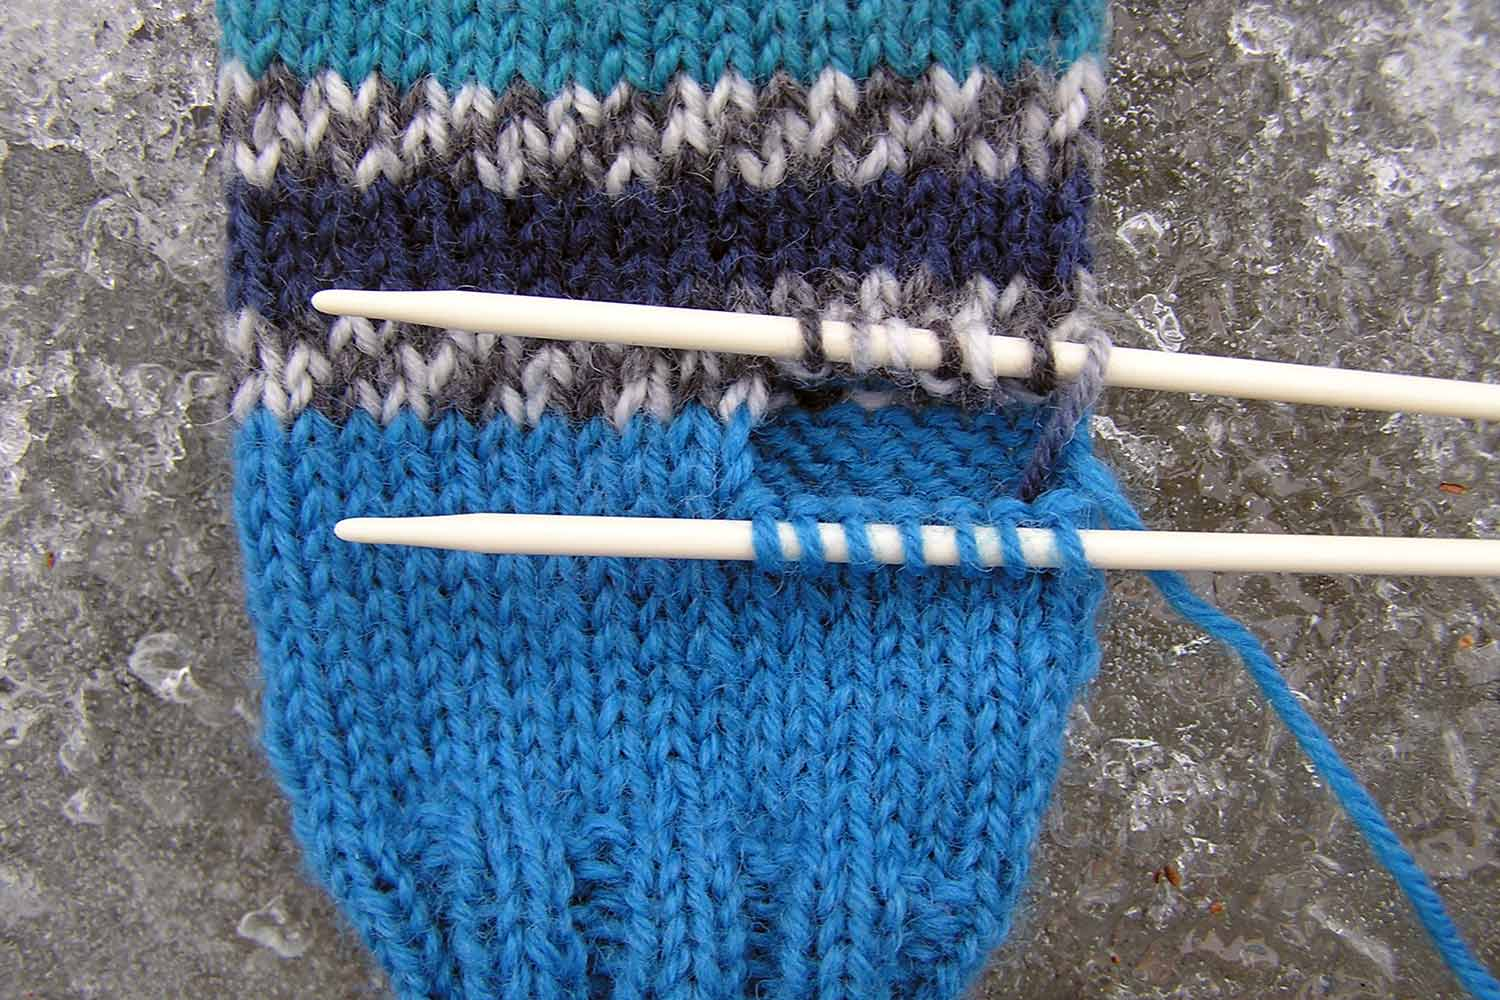 A hole for the thumb has been created in the mitten with live stitches safely preserved on two separate needles.